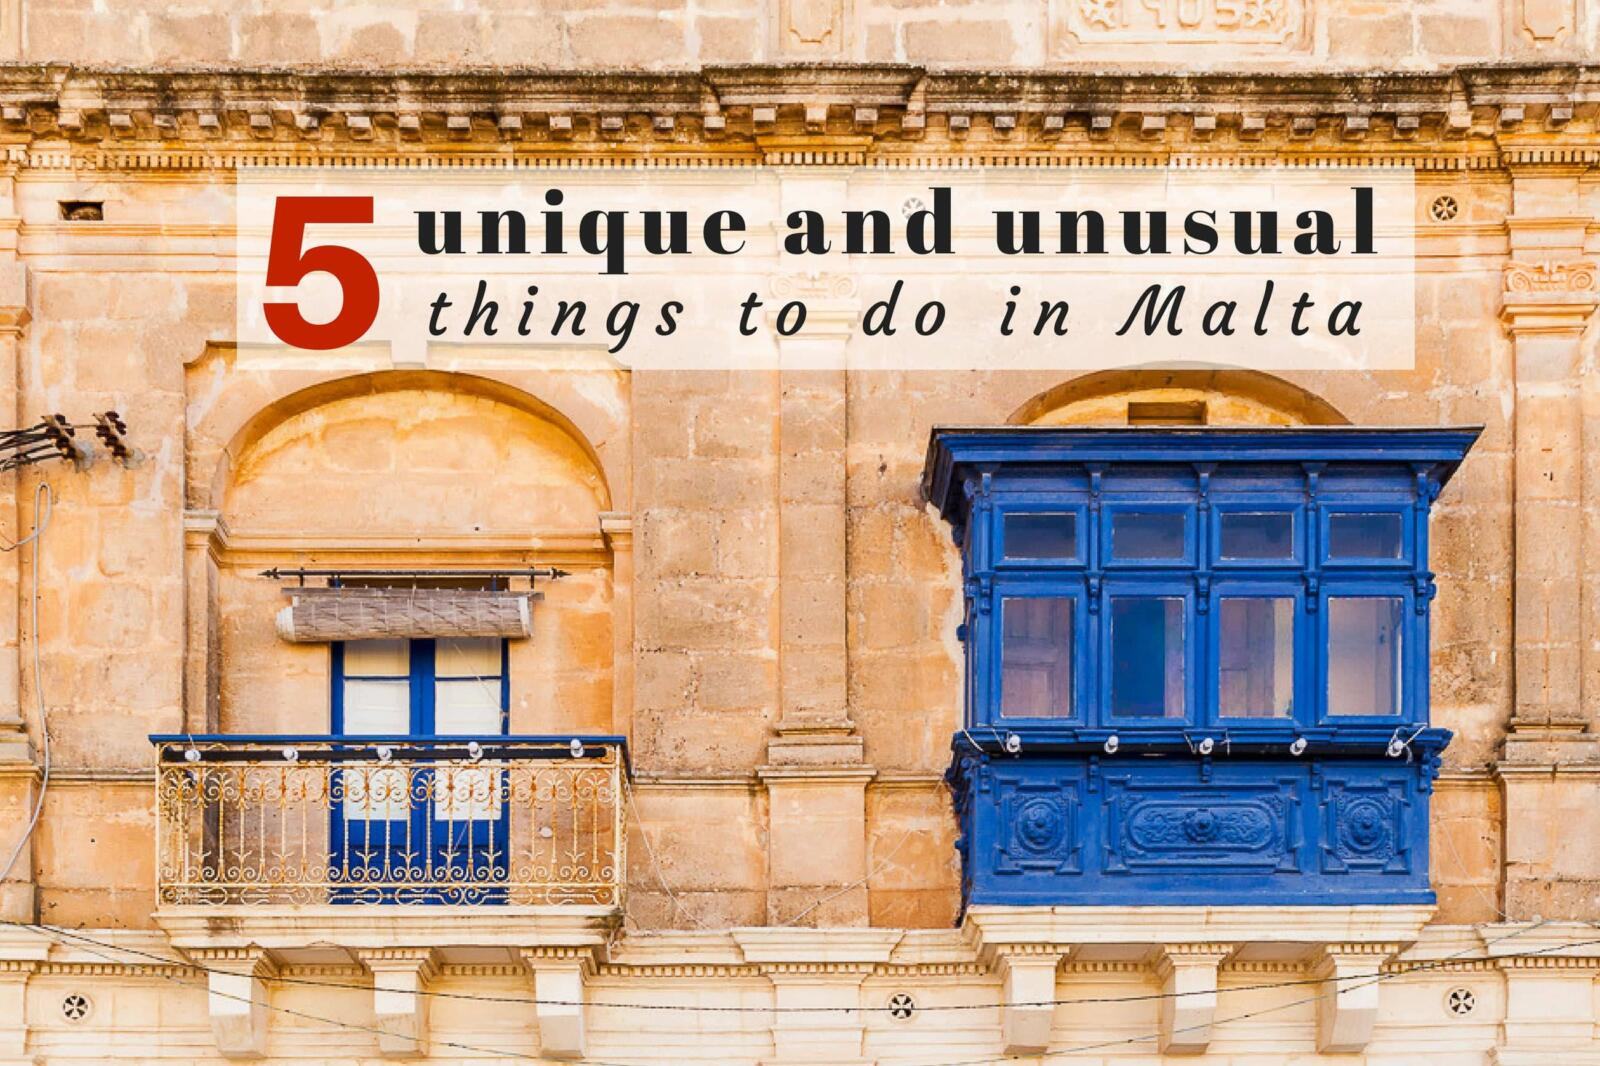 5 unusual things to do in Malta